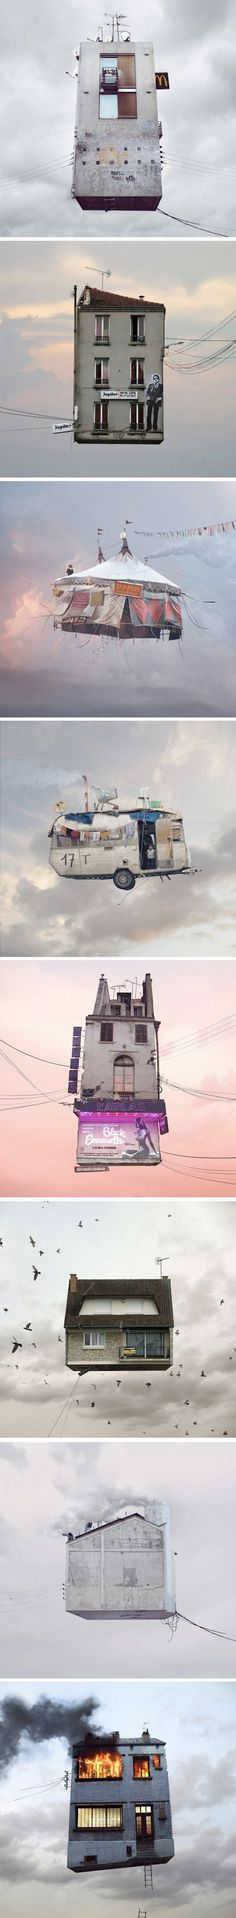 série Flying Houses par le photographe français Laurent Chéhère.